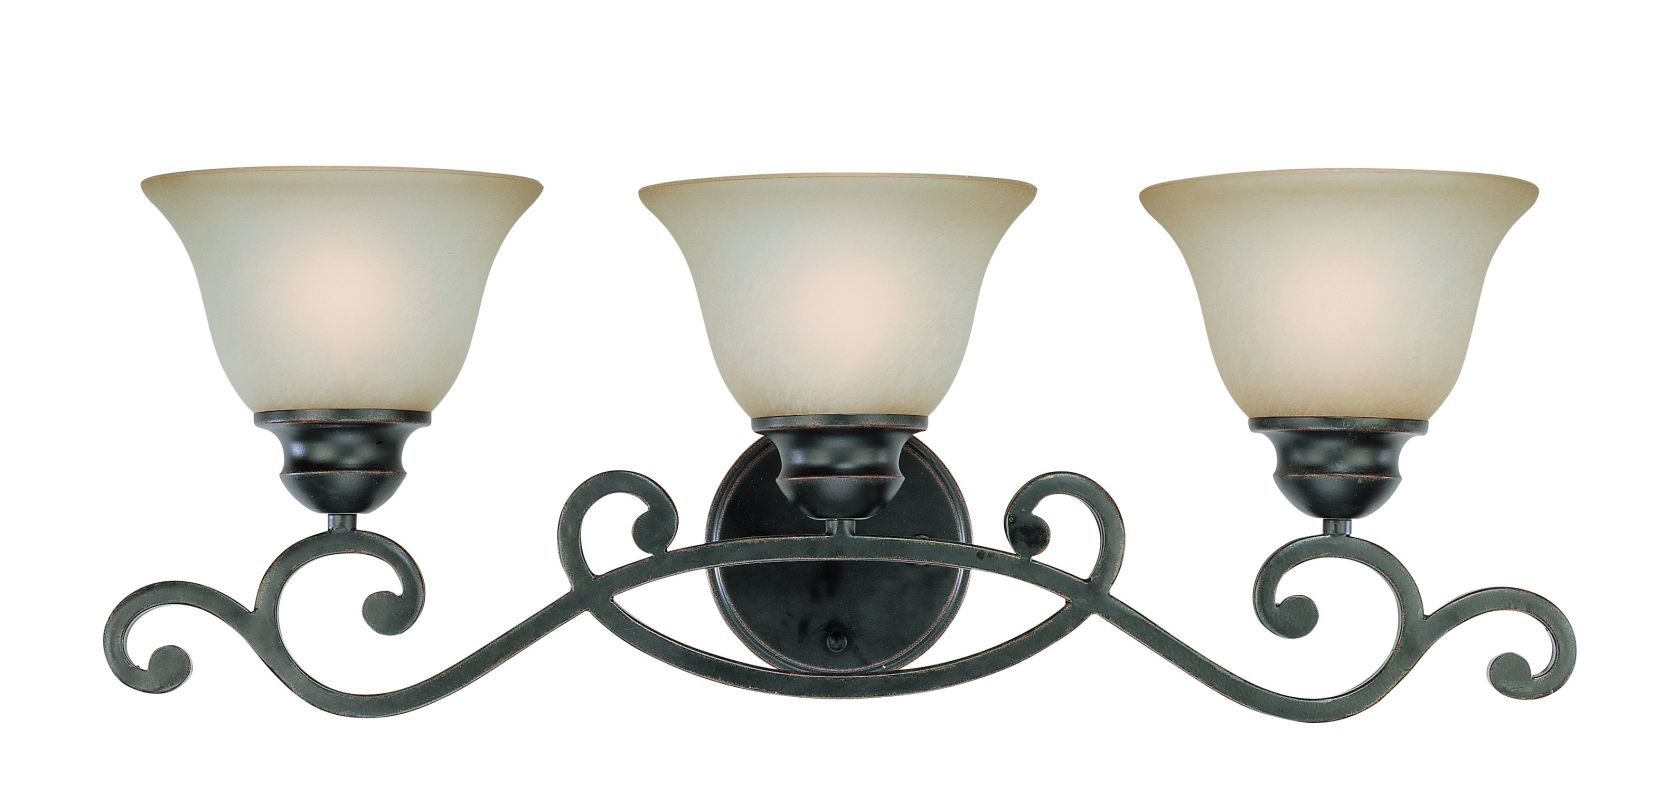 Jeremiah Lighting 23003 Farmington 3 Light Bathroom Vanity Light - 27